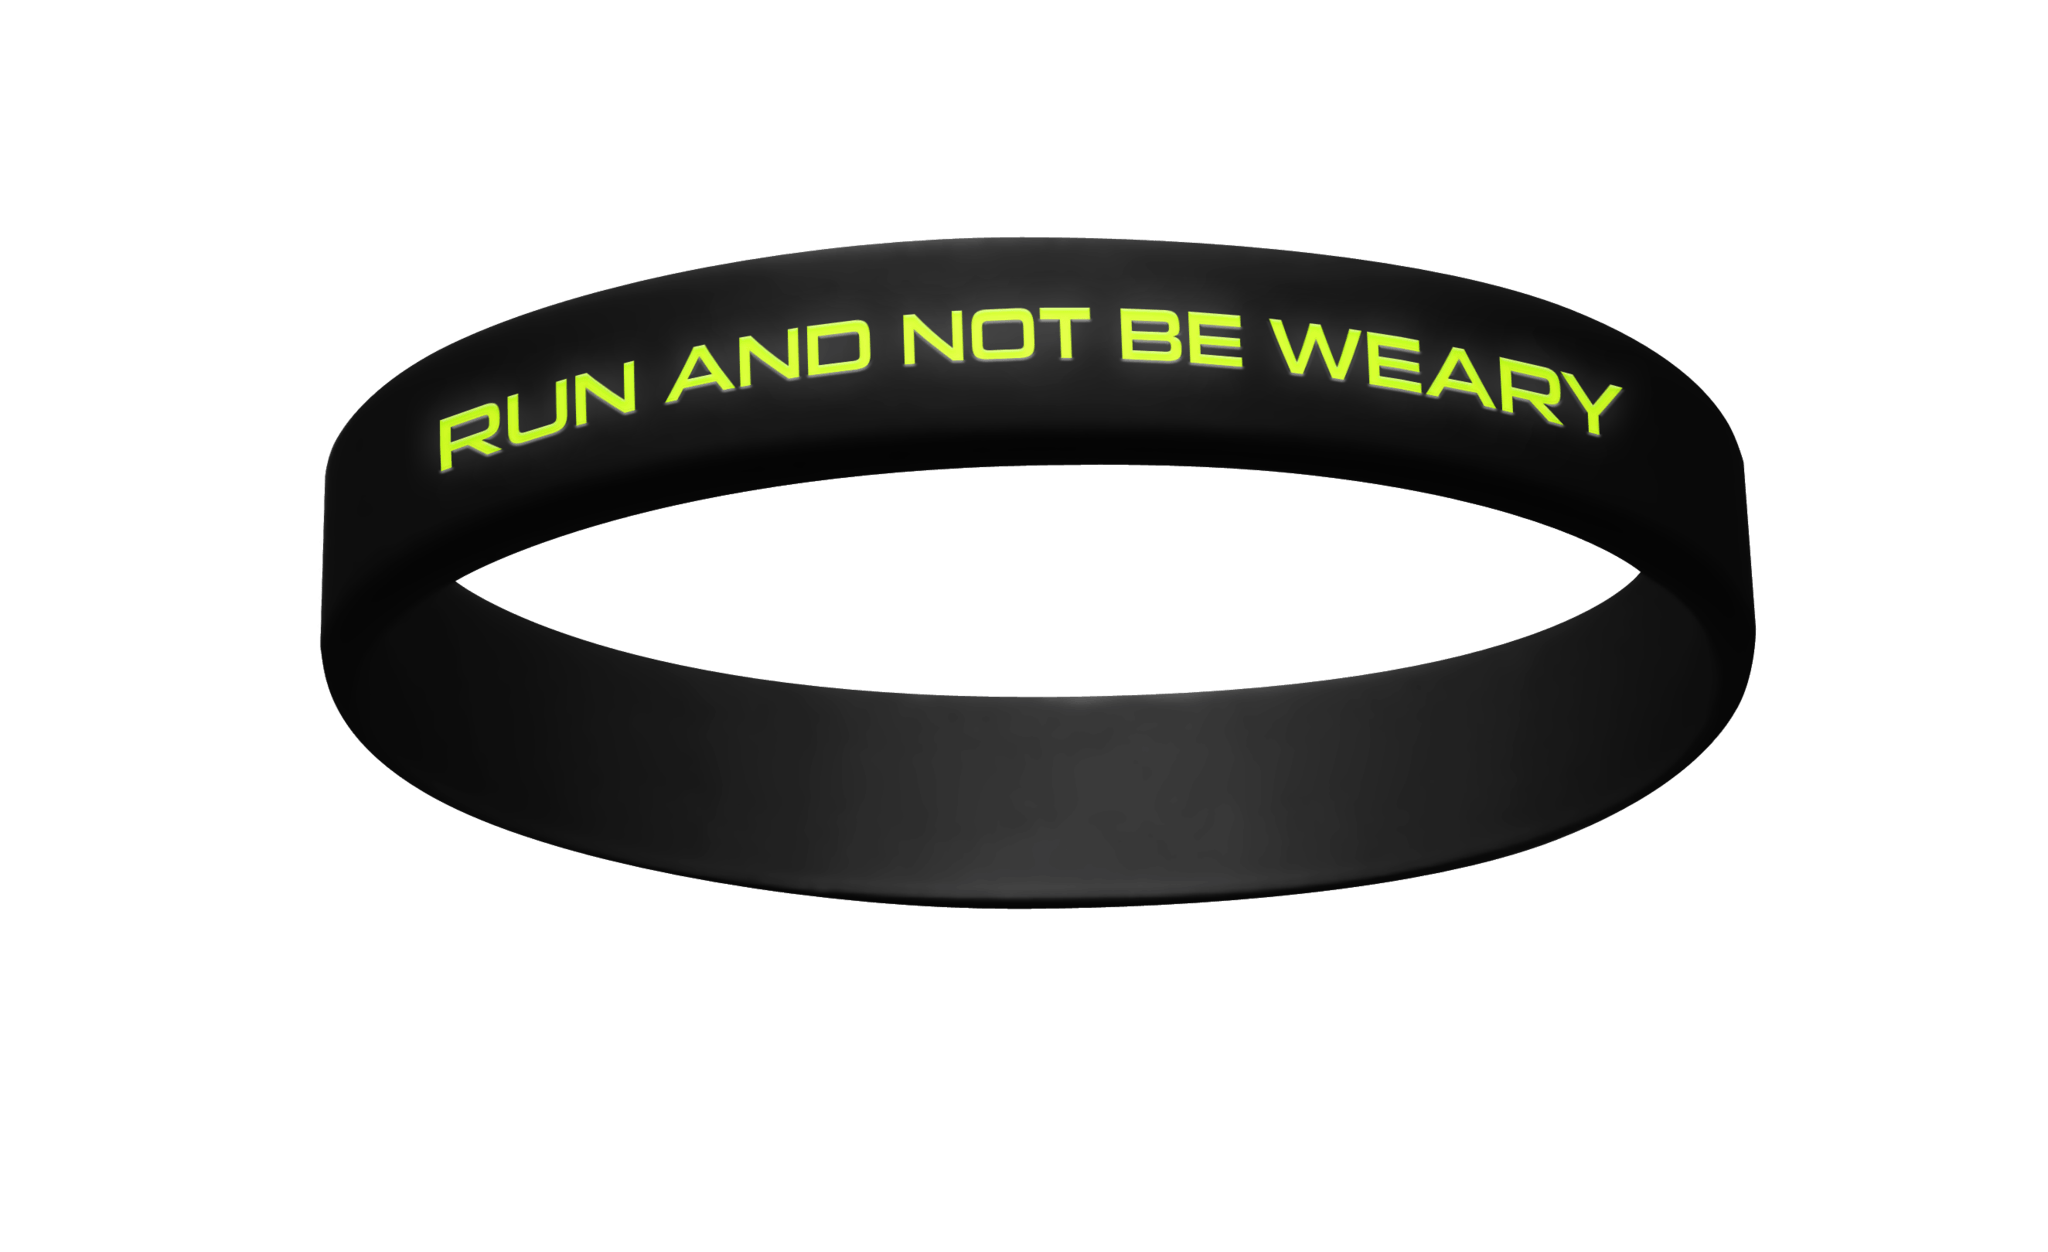 RUN and Not Be Weary Band